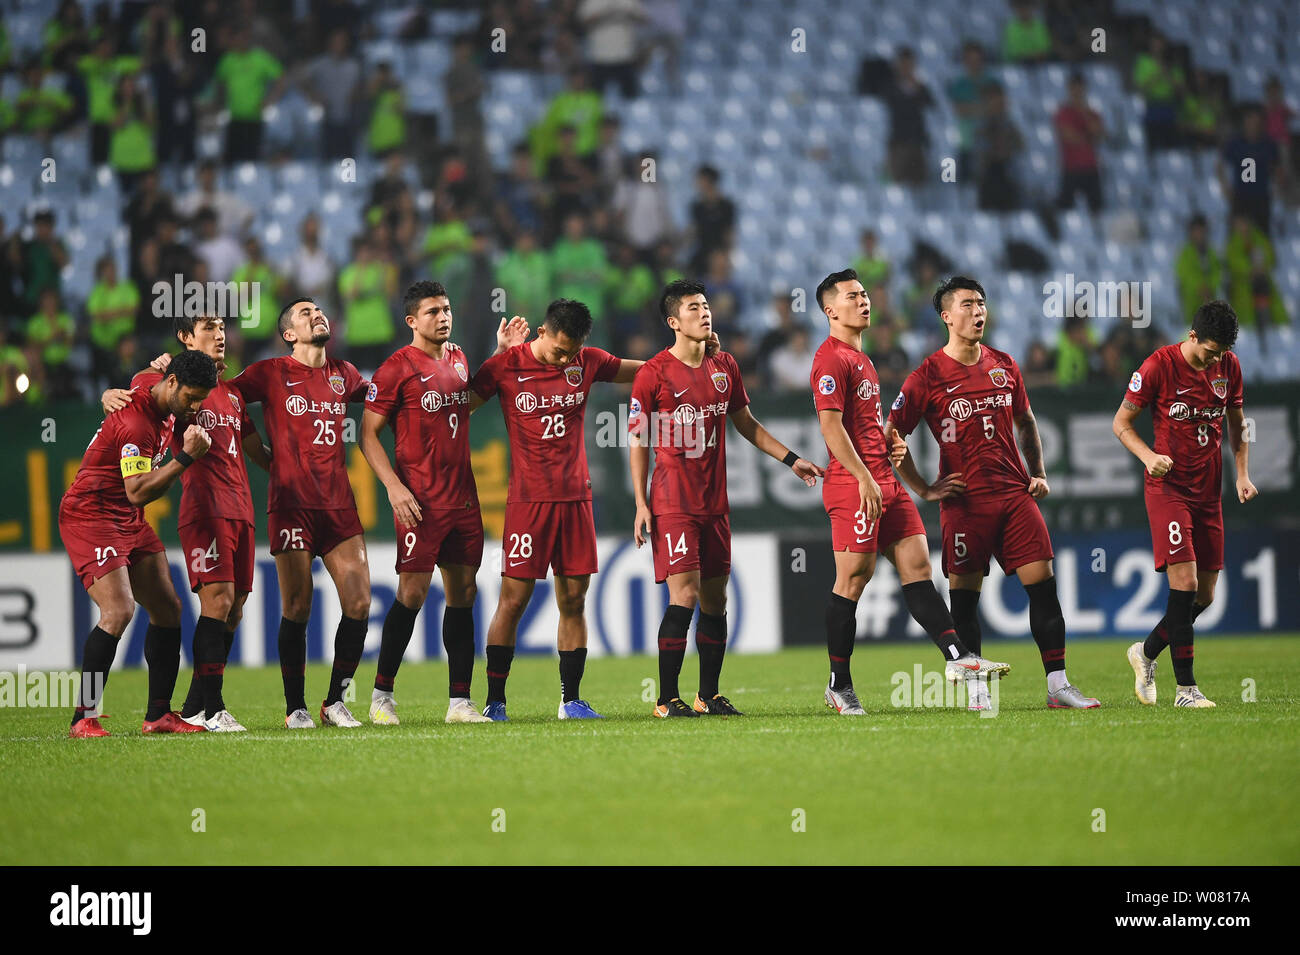 63f3a648 Players of China's Shanghai SIPG F.C. celebrate after scoring ...